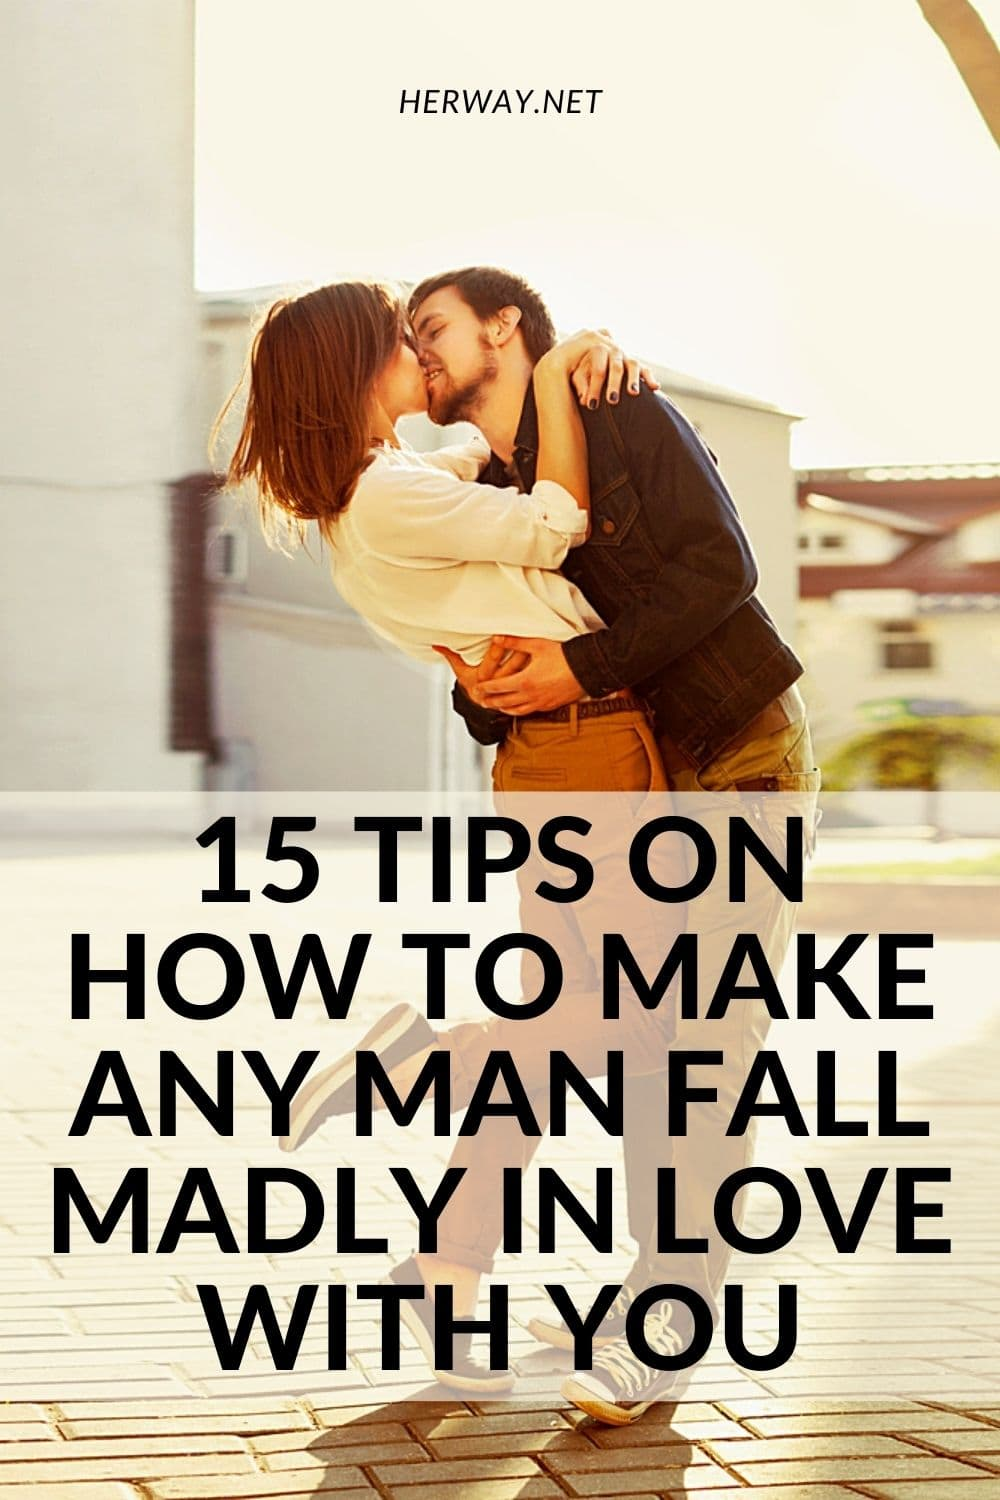 15 Tips On How To Make Any Man Fall Madly In Love With You